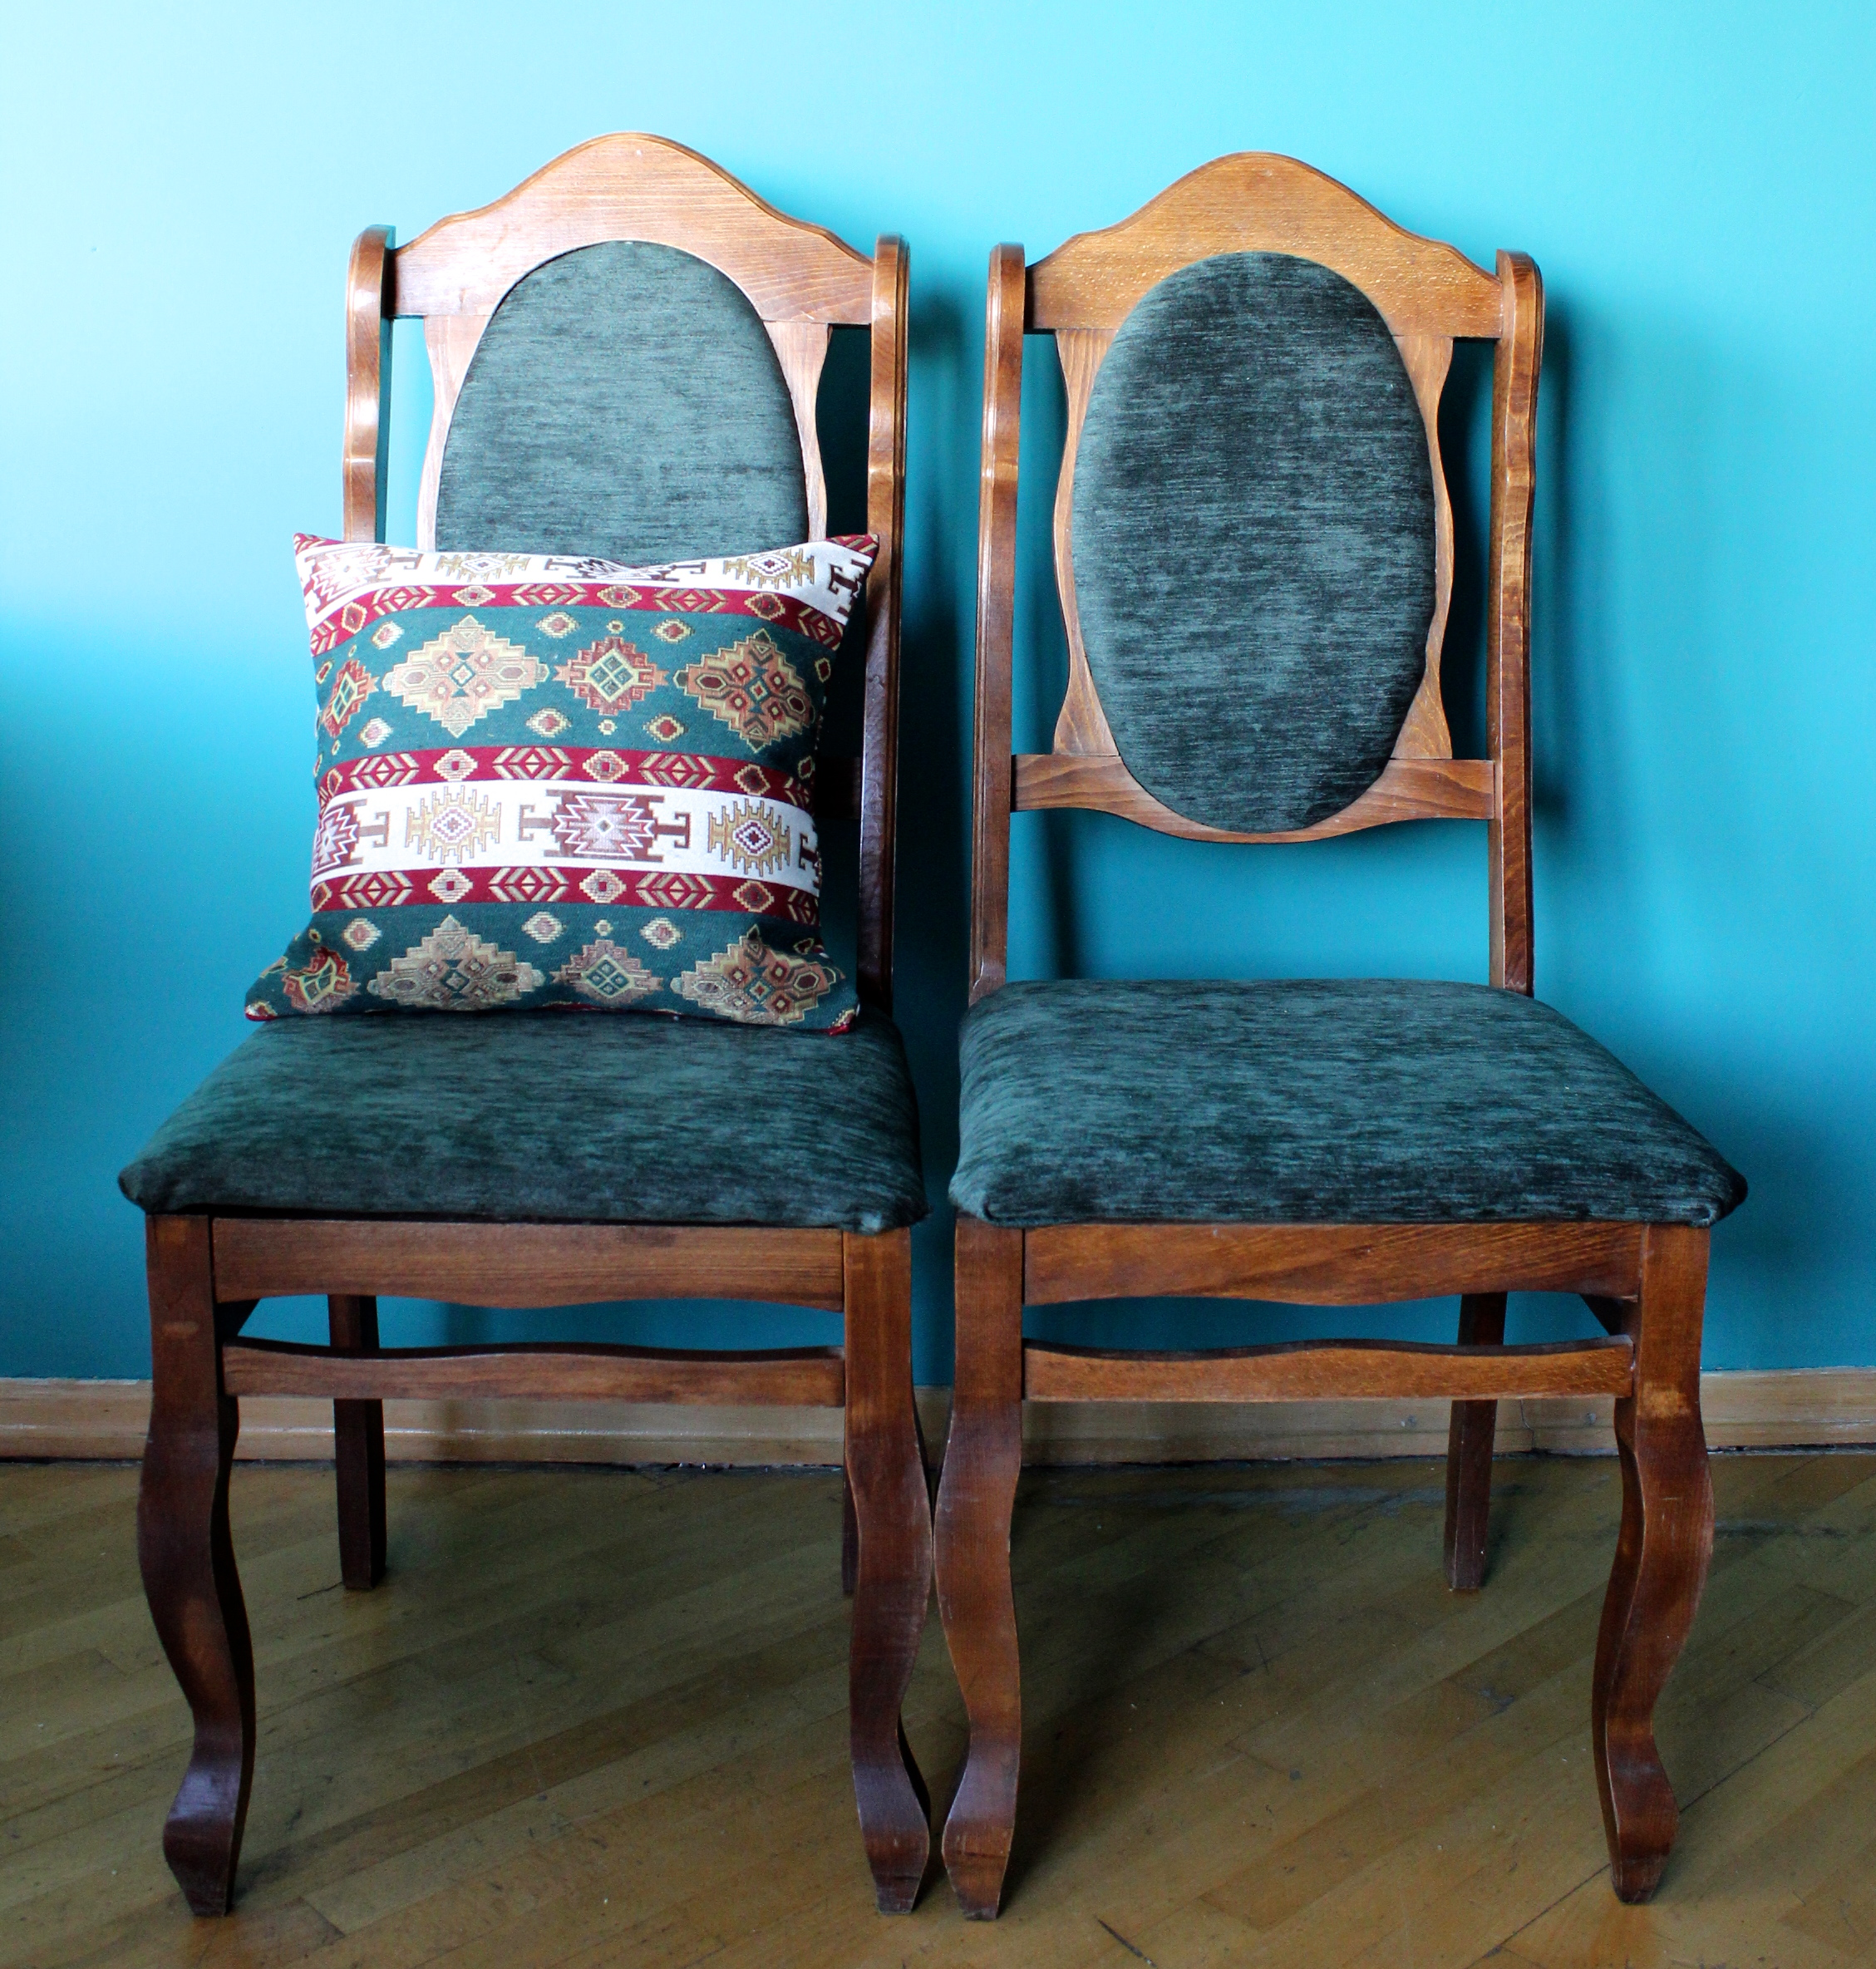 diy project reupholstering old chairs. Black Bedroom Furniture Sets. Home Design Ideas